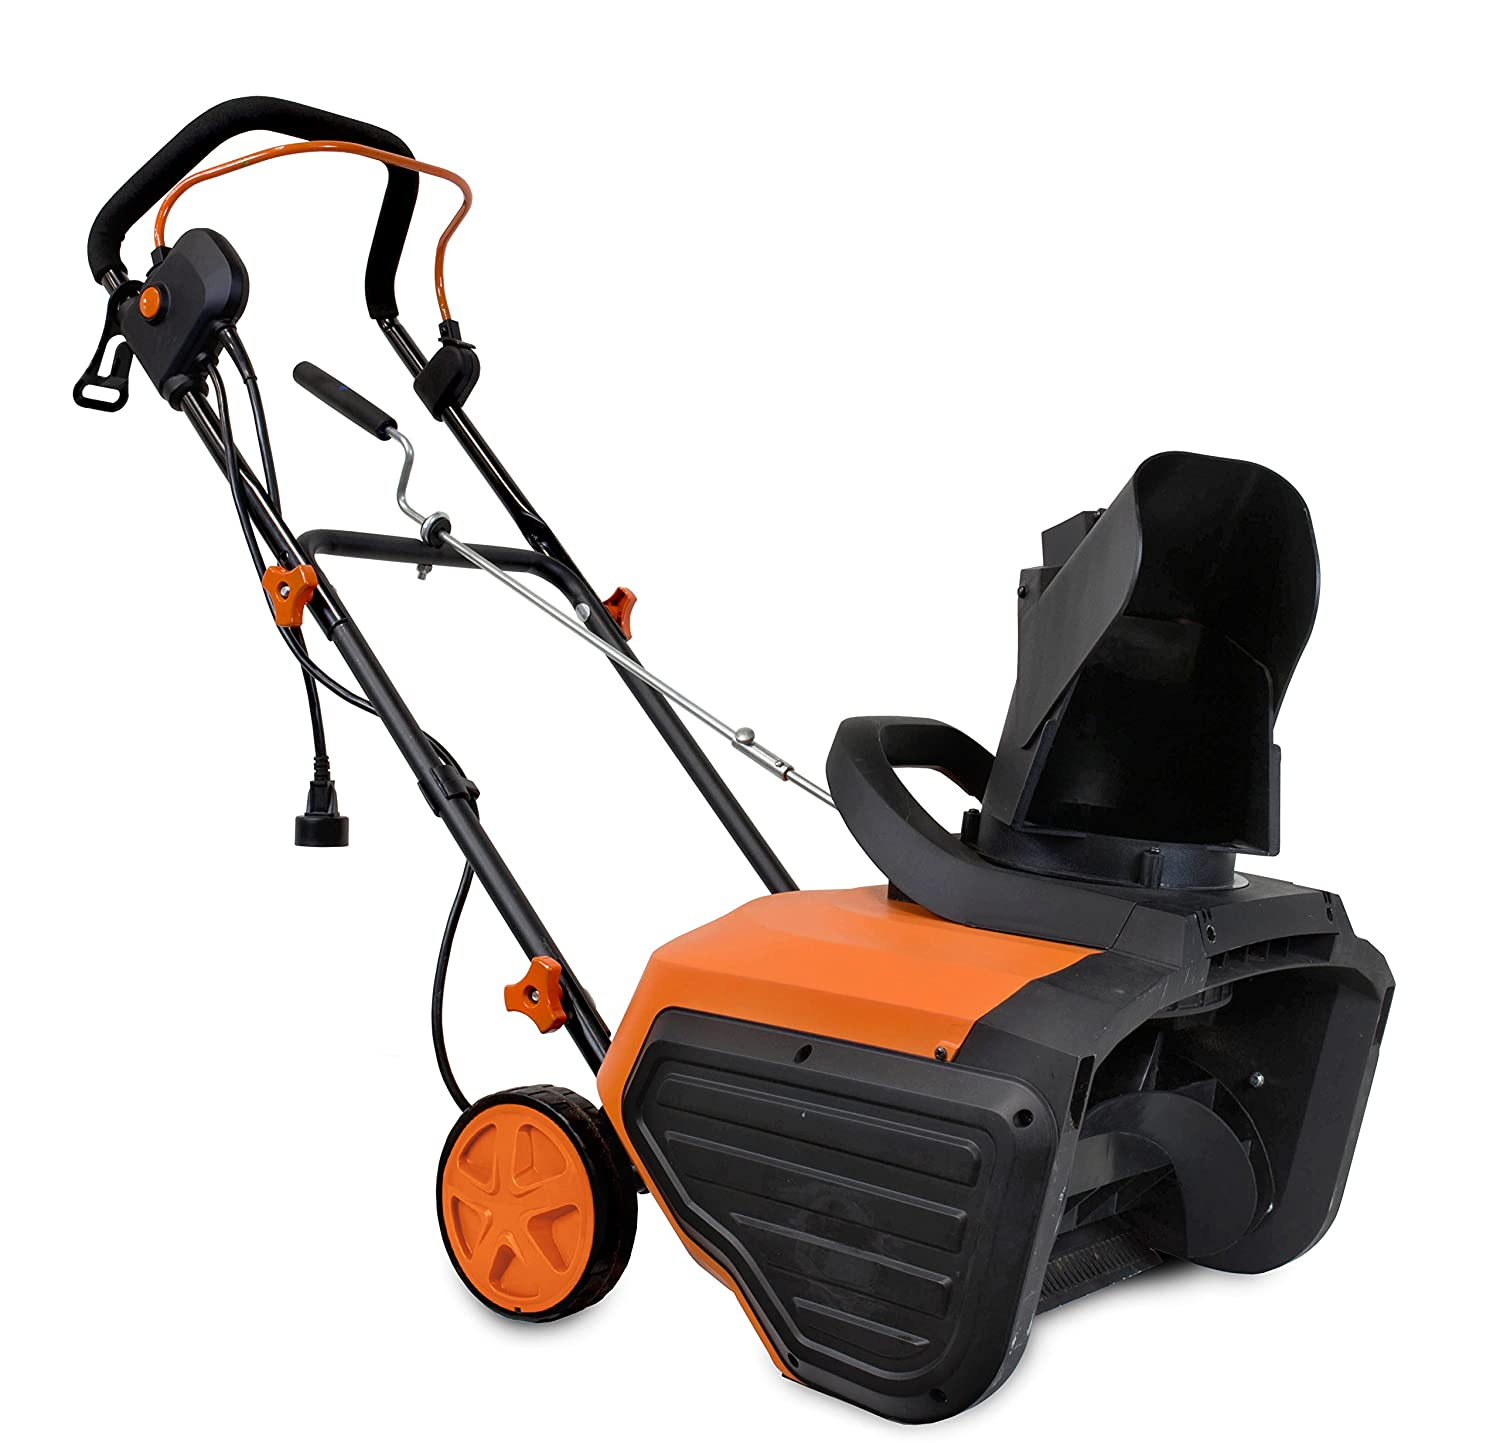 Top 10 Best Snow Thrower (2020 Reviews & Buying Guide) 7